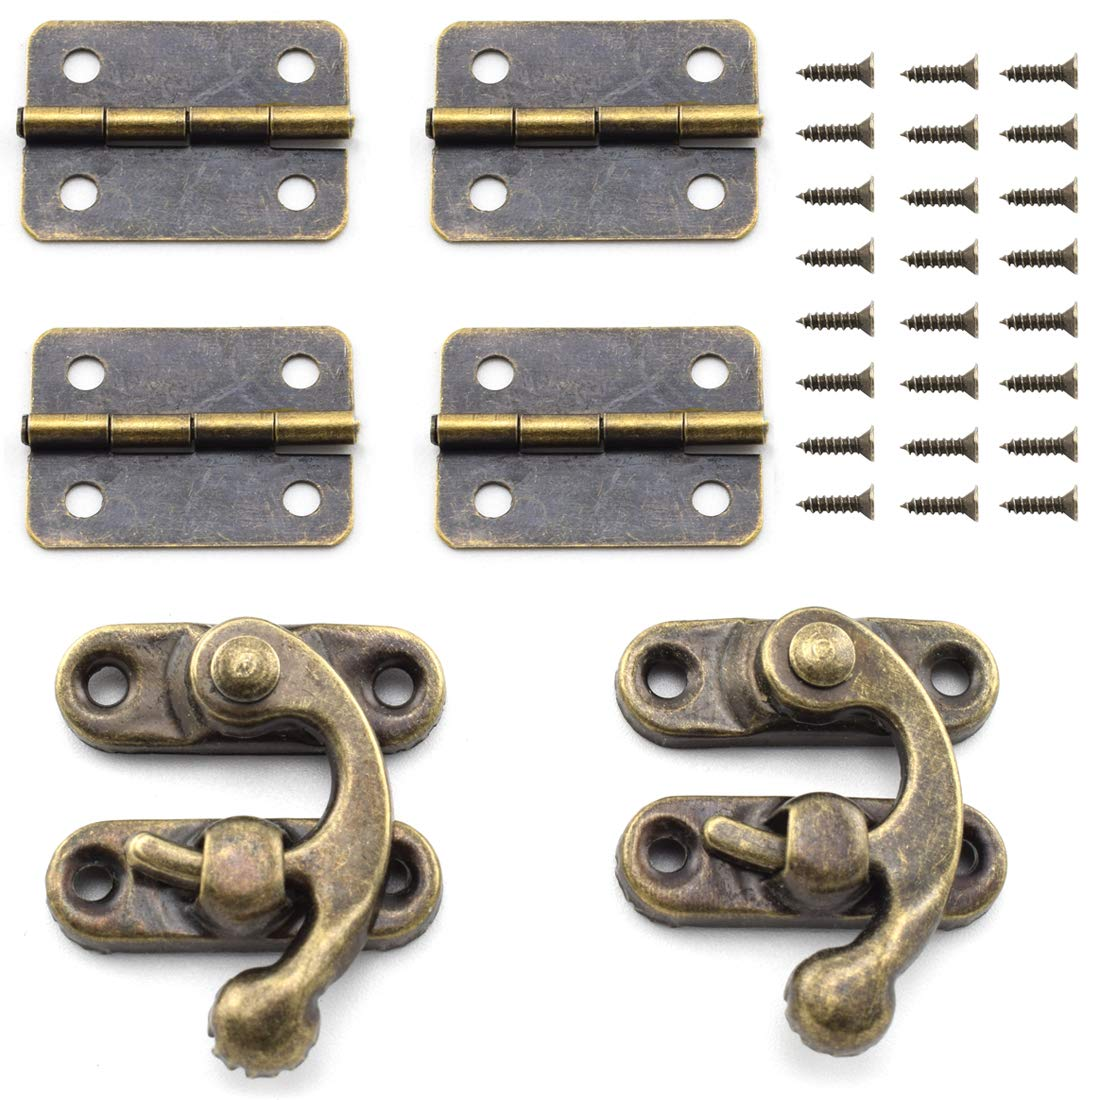 Mini Engrave Retro Hinges With Screws For Wooden Box Jewelry Chest Box Cabinet